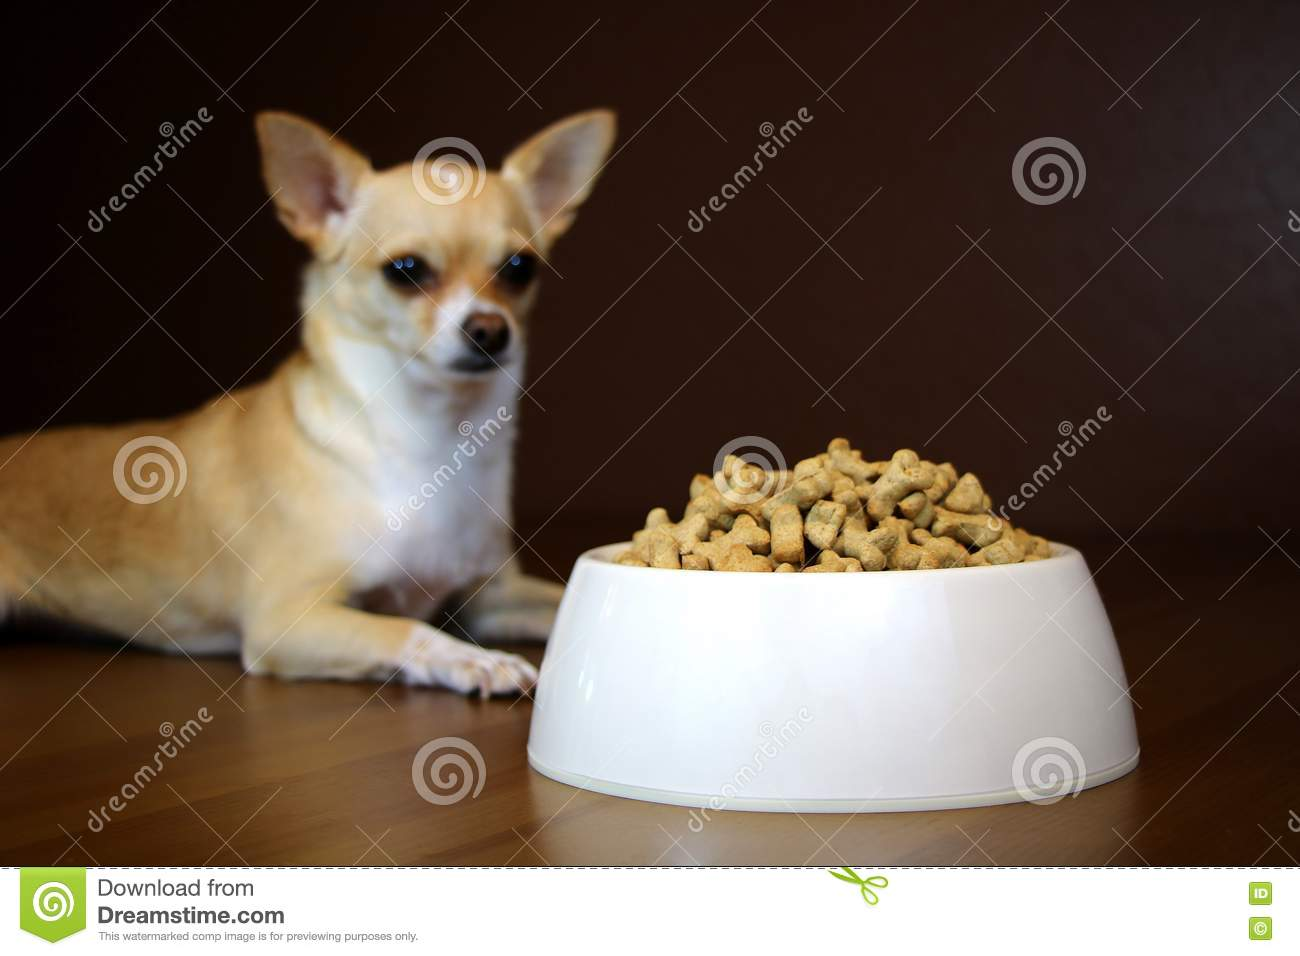 Download Dog Perspective Of A Food Bowl Stock Photo - Image of full, dish: 77817888